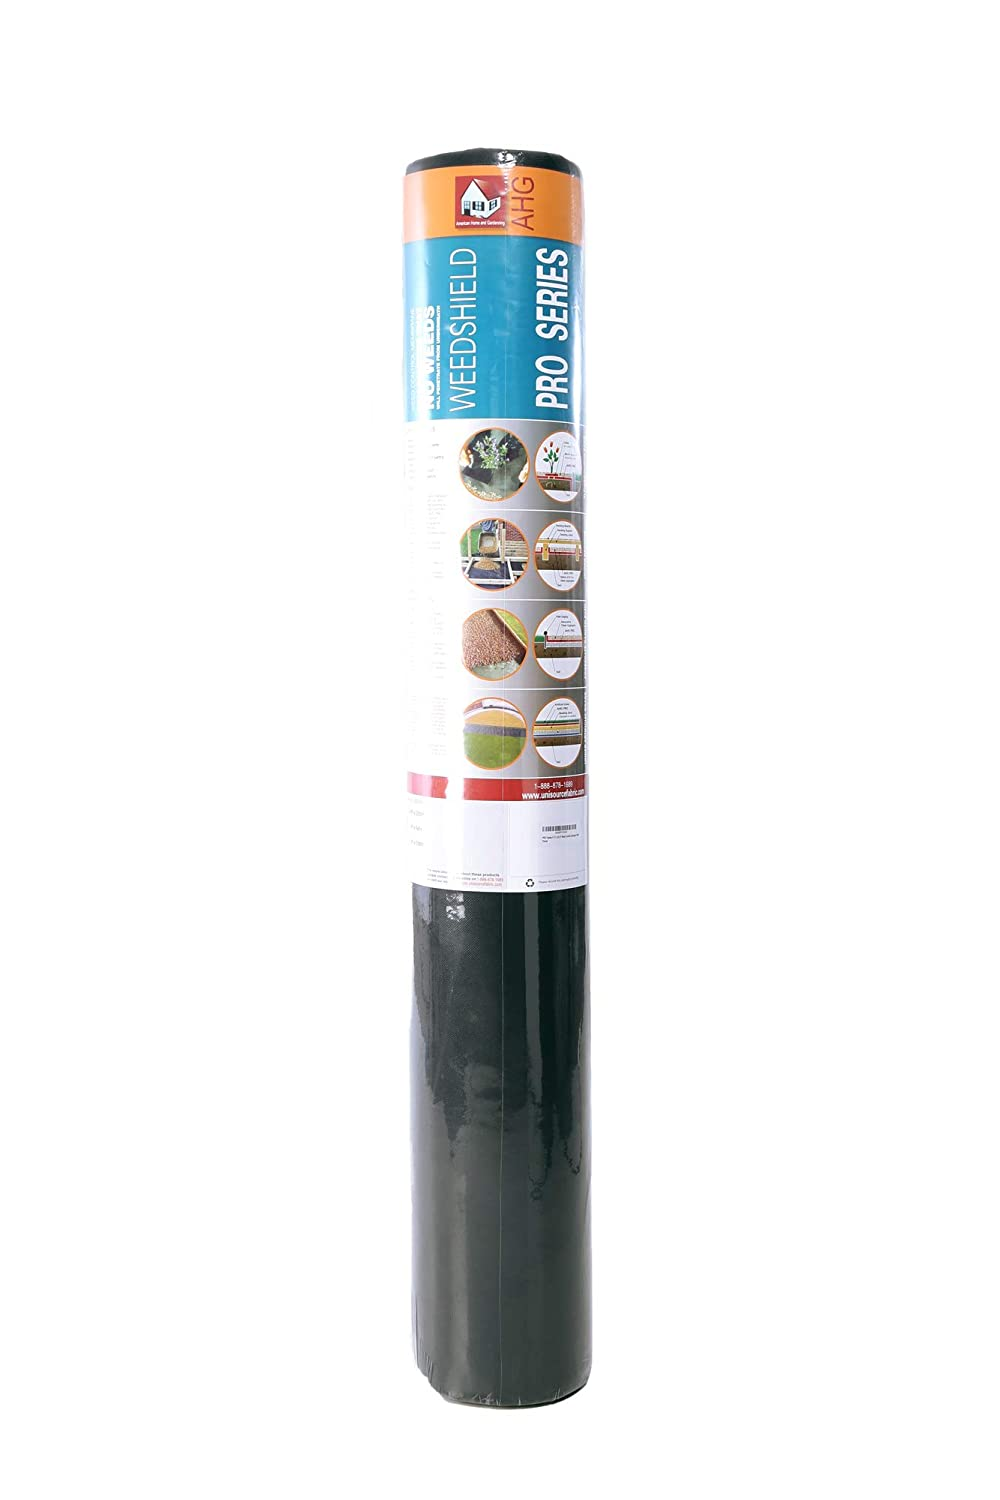 PRO Series 4 Ft X 225 Ft Weed Control Landscape Fabric UNI-SOURCE TESTILE UST-003